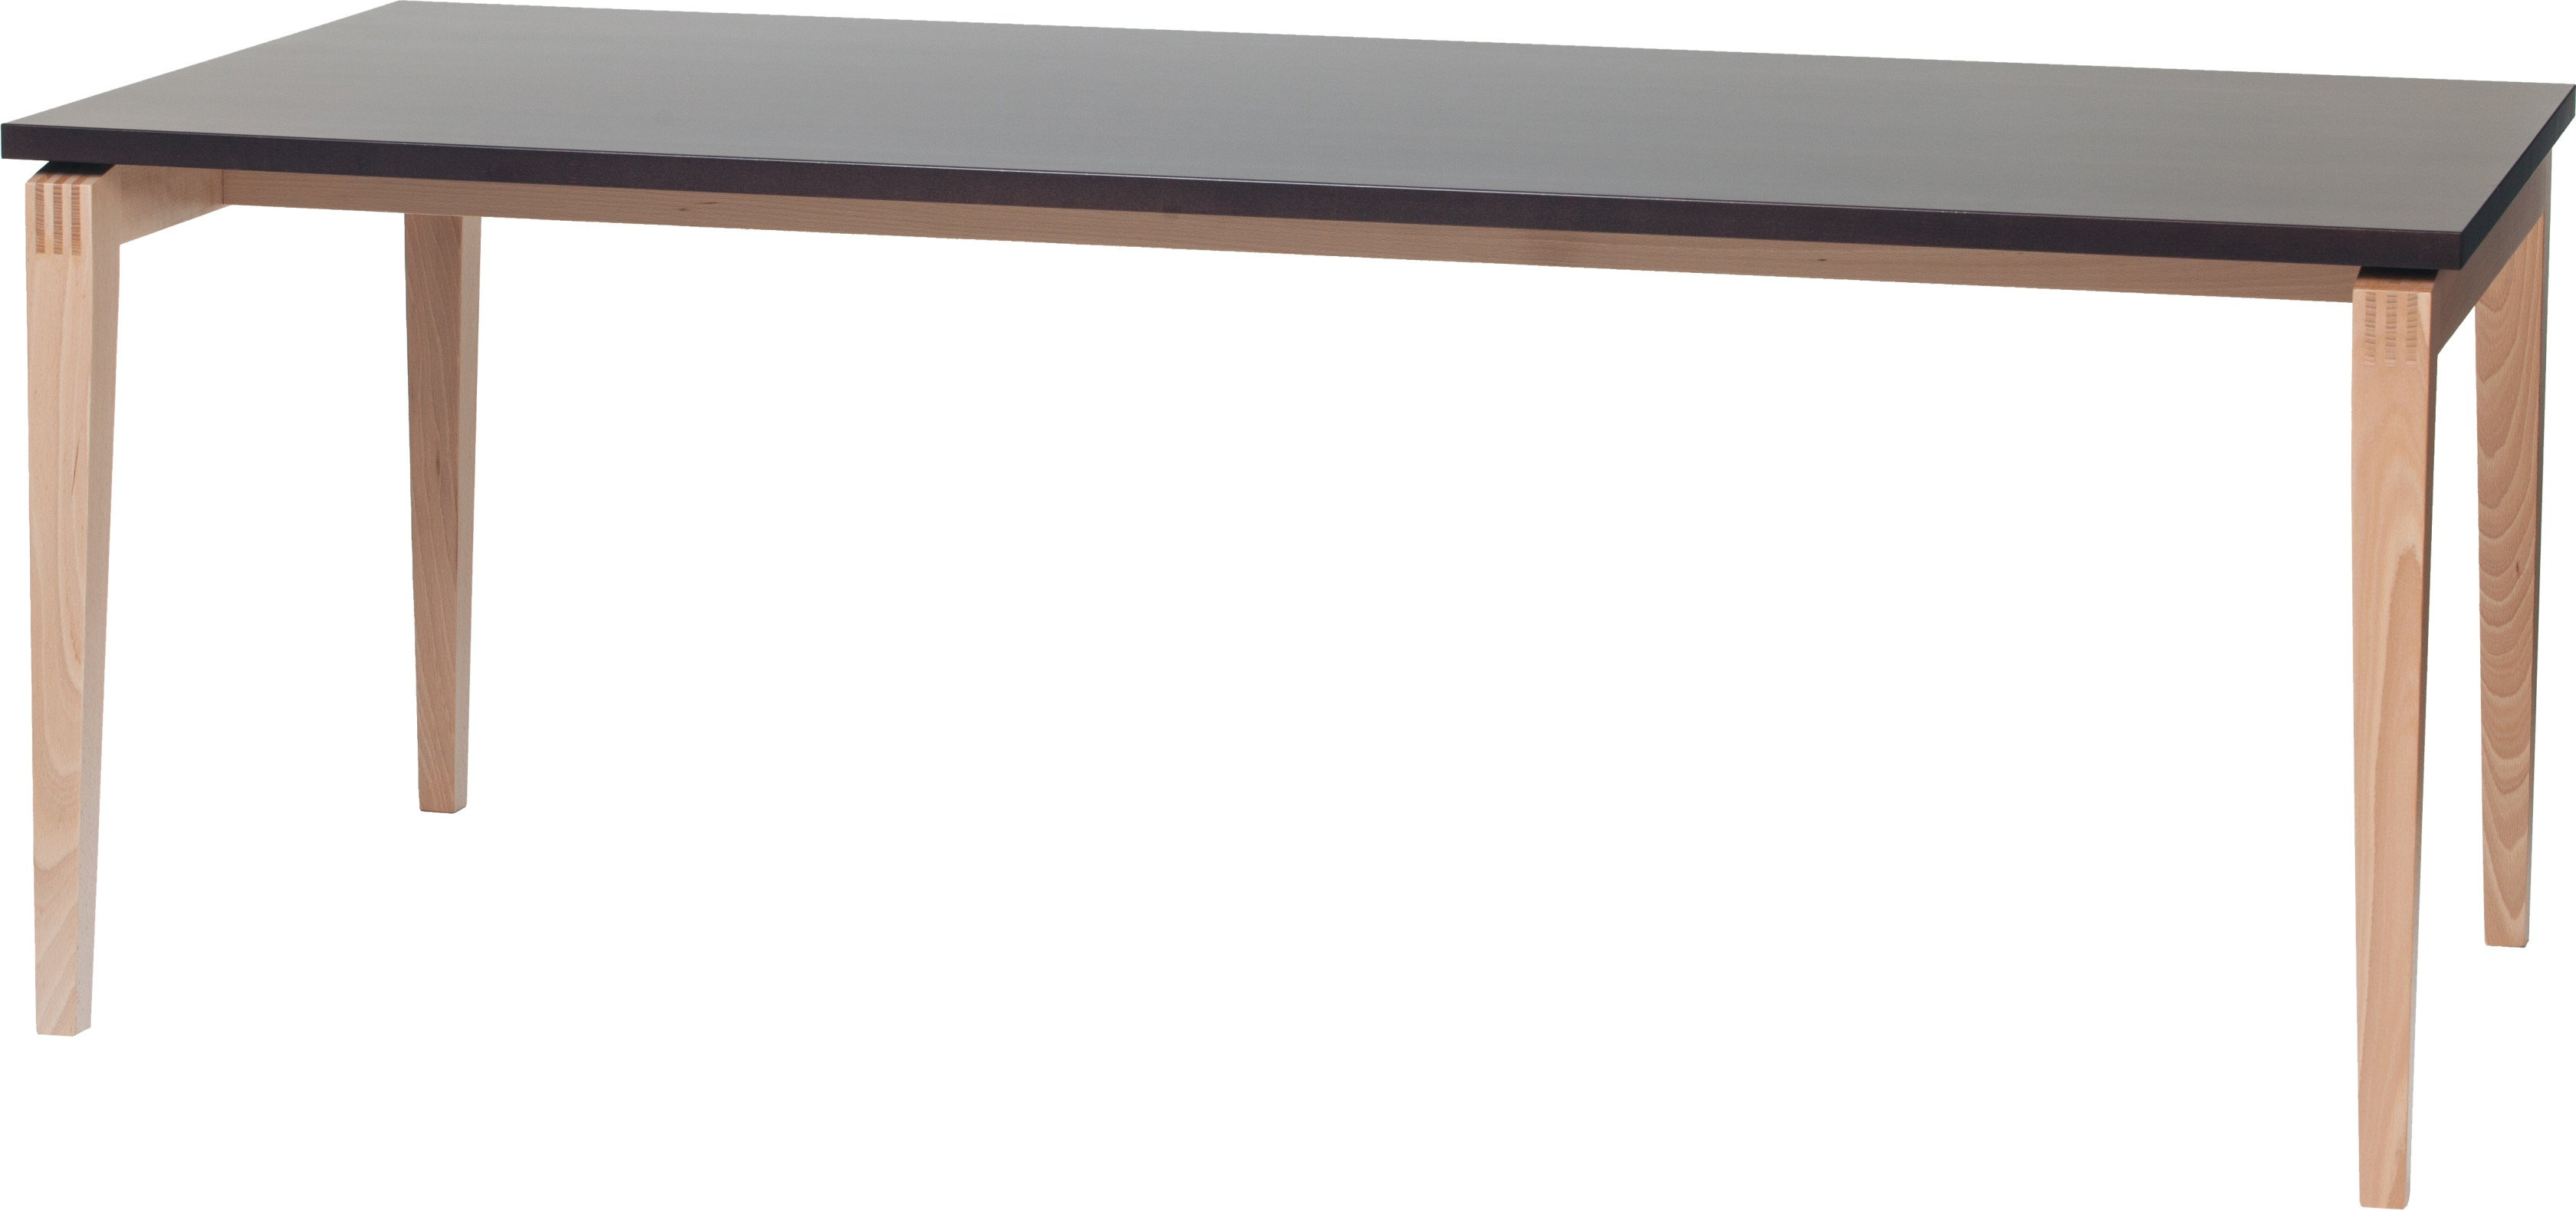 Beech Wood Natural/Black Grain Stockholm Table 90x200 by M. K. Johansen for TON